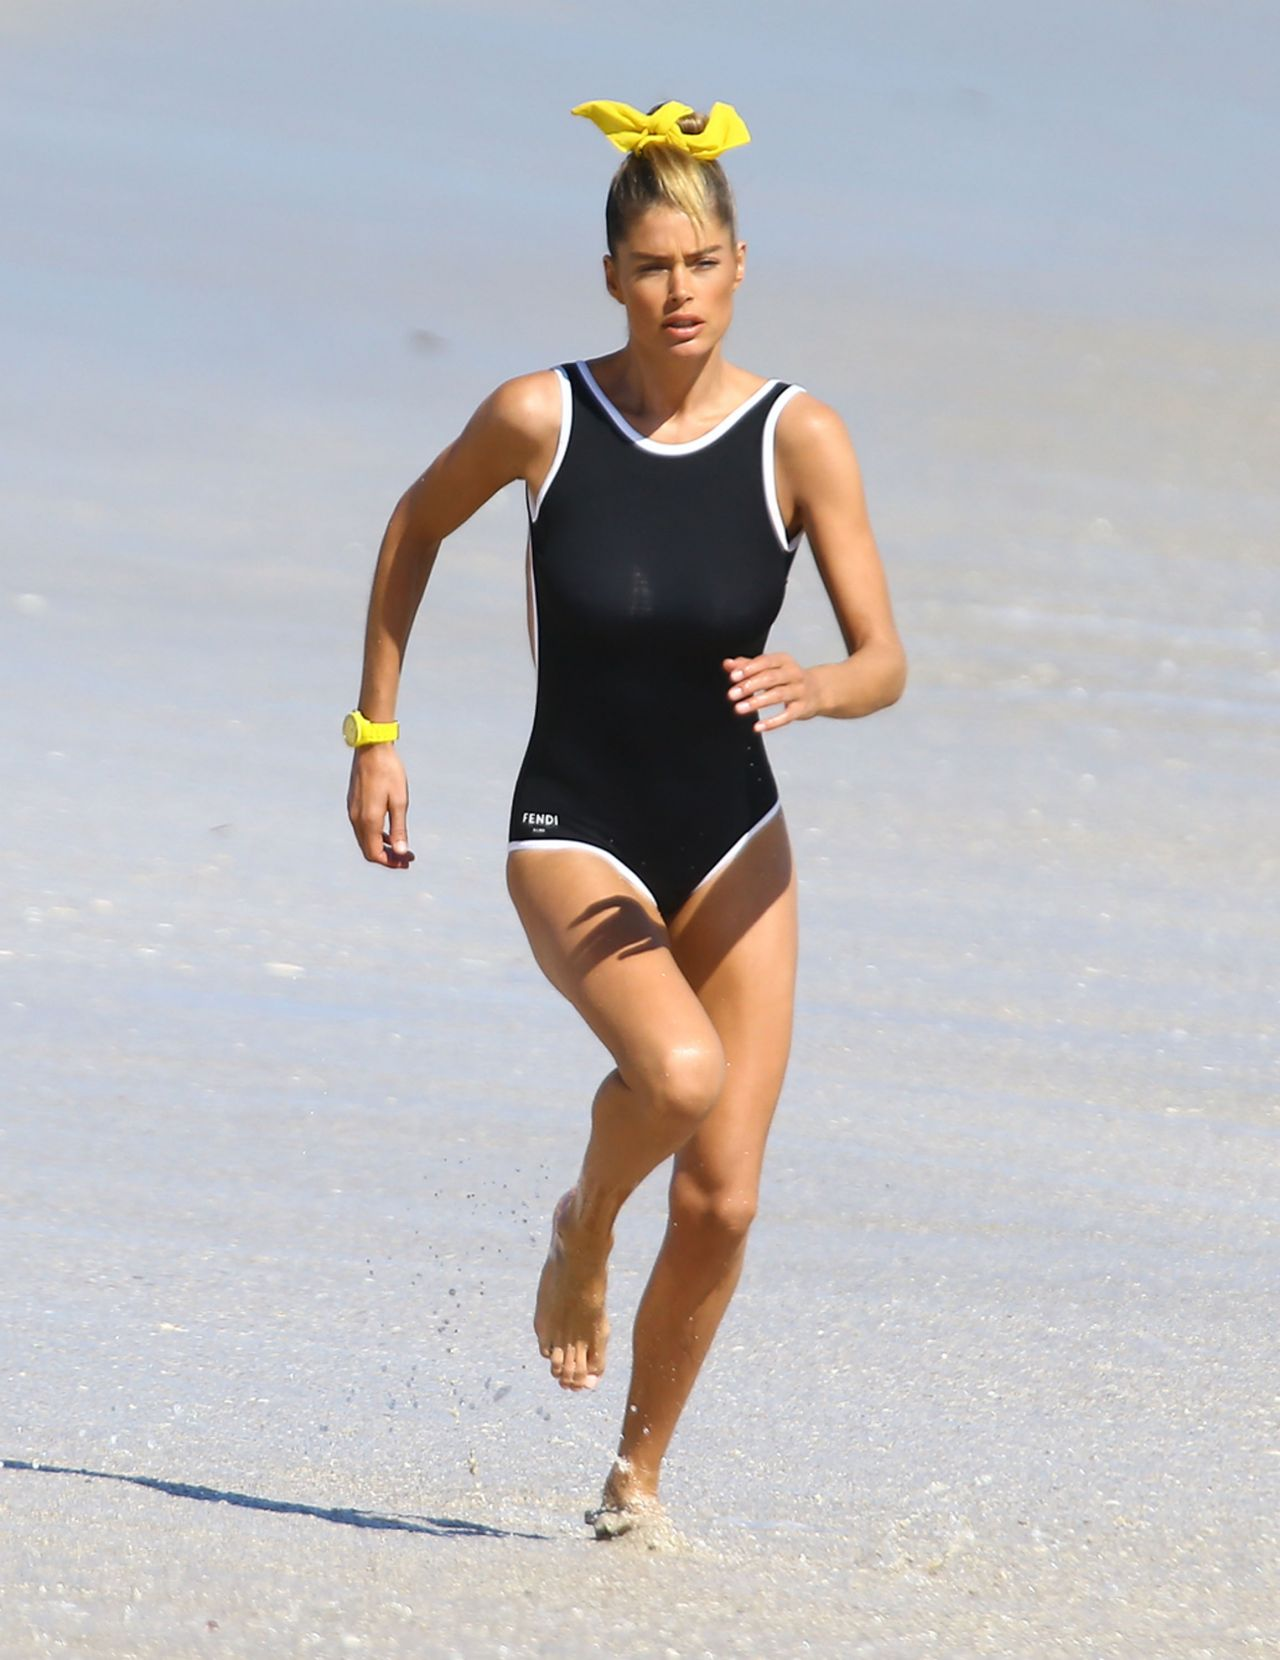 Doutzen Kroes in a Swimsuit - Photoshoot in Miami, February 2015